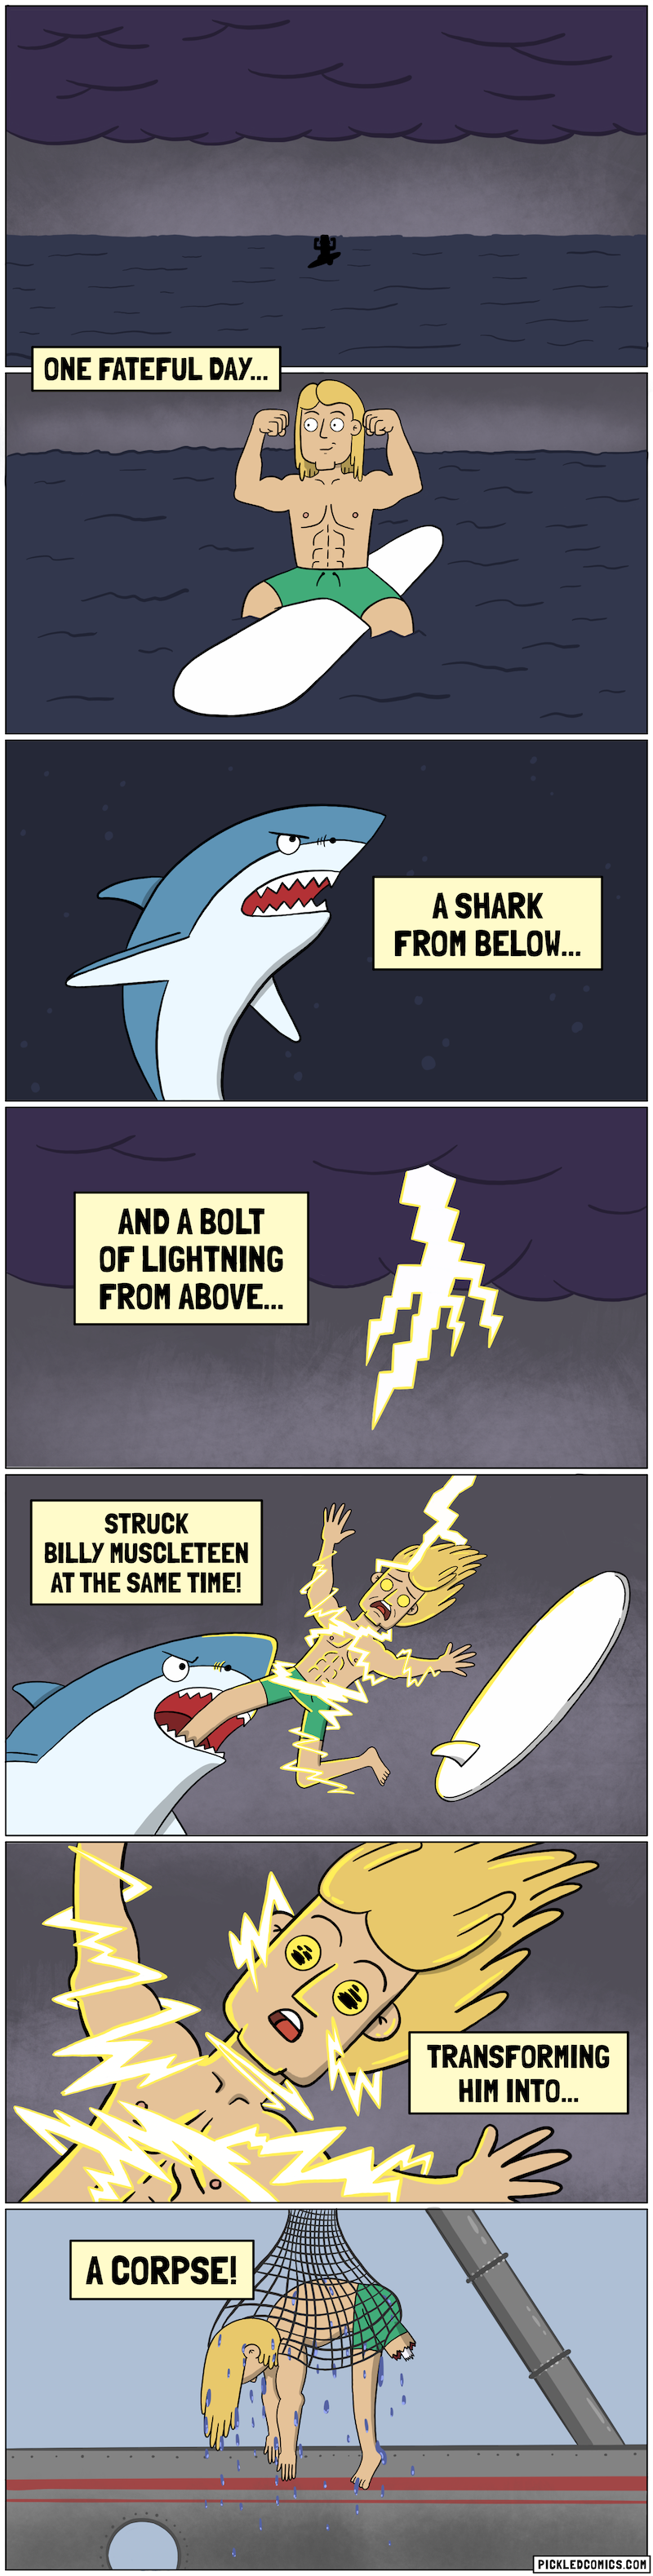 One fateful day, a shark from below and a bolt of lightning from above struck Billy Muscleteen at the same time! Transforming him into... a corpse!